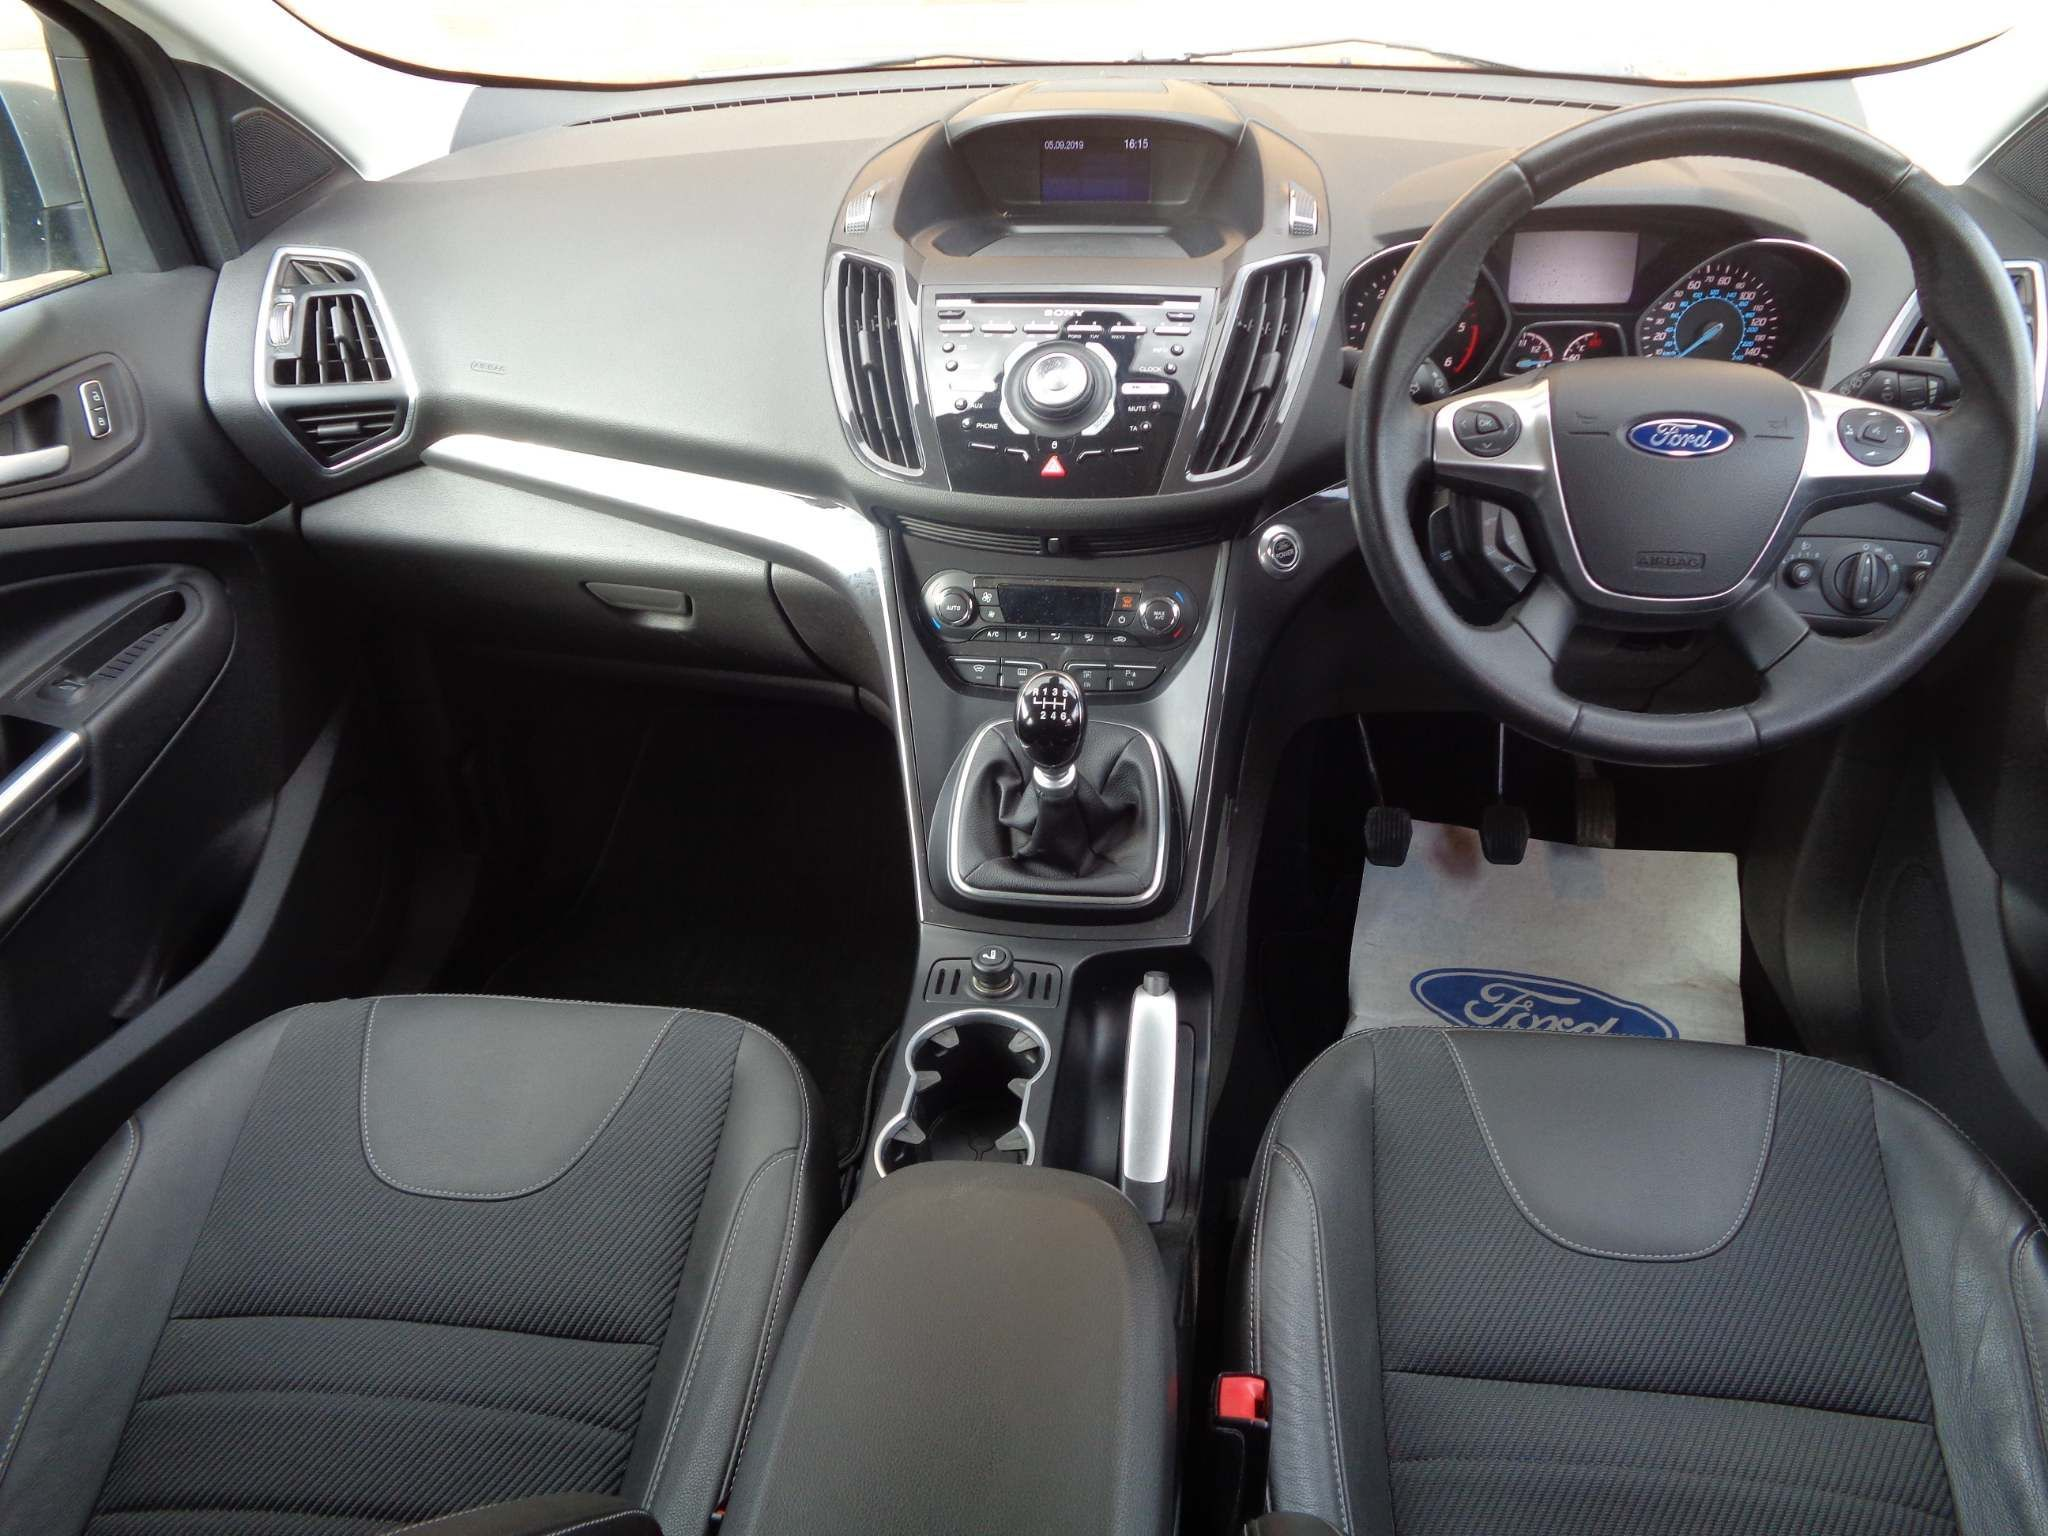 http://pictures2.autotrader.co.uk/imgser-uk/servlet/media?id=fdcaecb41e684b51845a792d54adce61